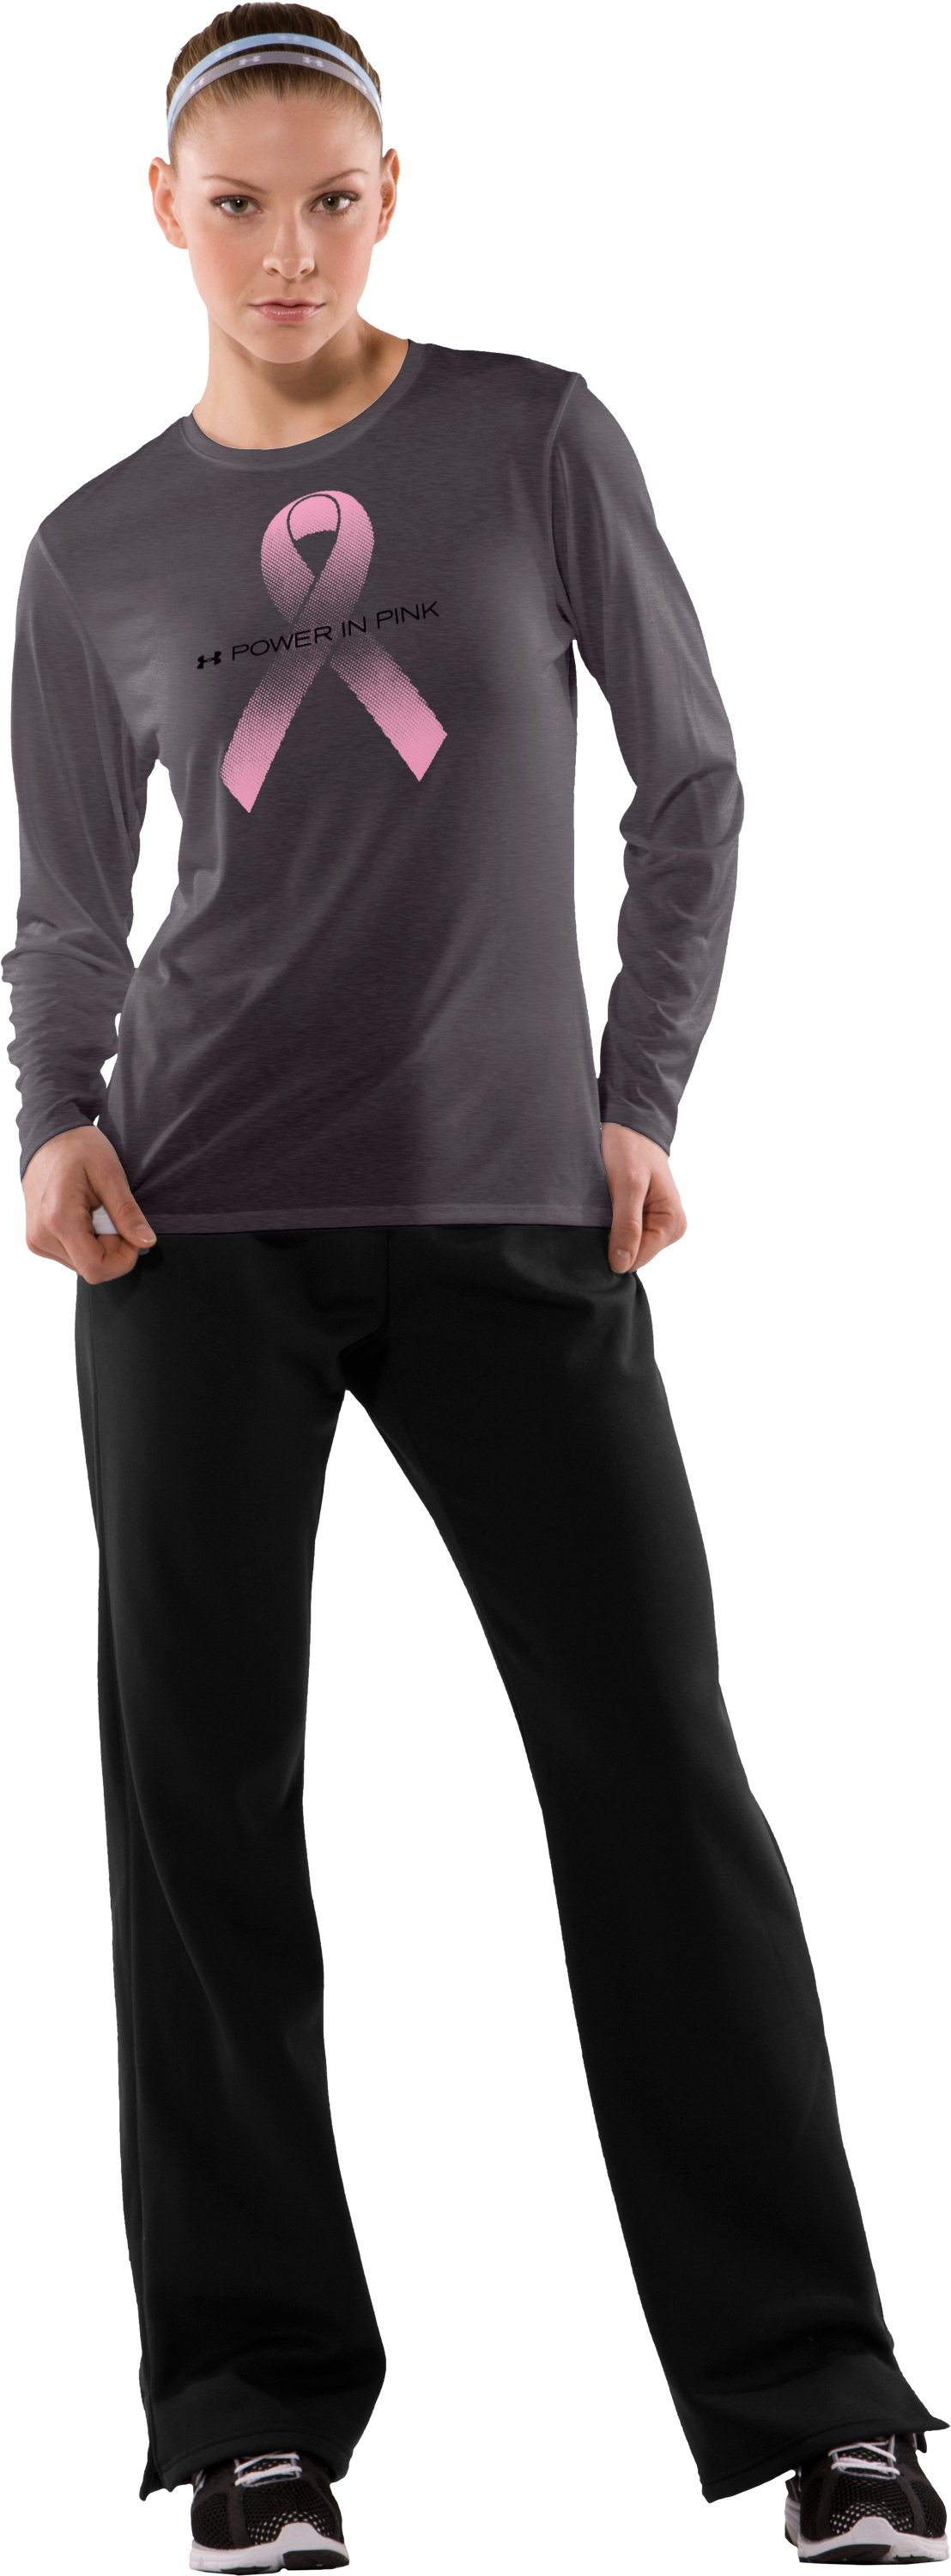 Women's PIP® Long Sleeve Graphic T-Shirt, Carbon Heather